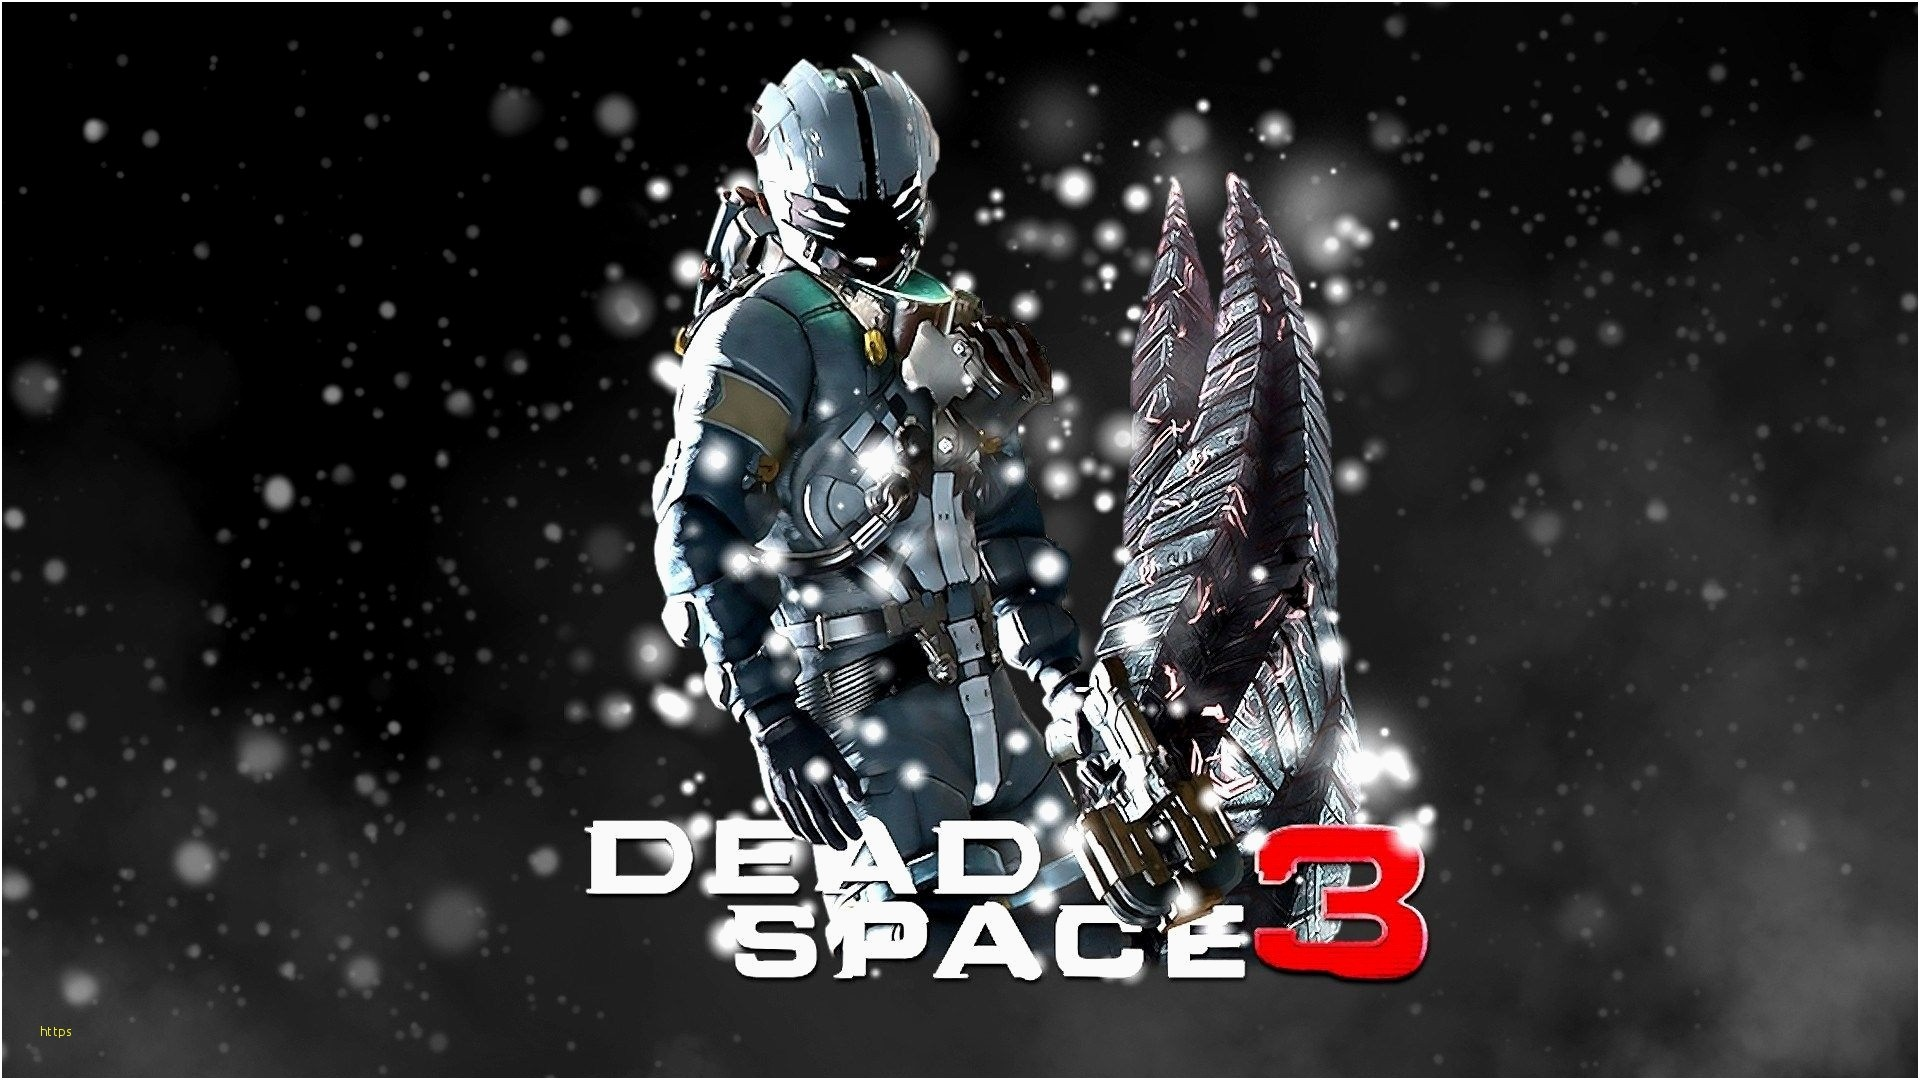 Res: 1920x1080, ... Bowser Wallpaper Best Of Dead Space Wallpapers Awesome 2016 05 02 Dead  Space 3 Wallpaper For ...